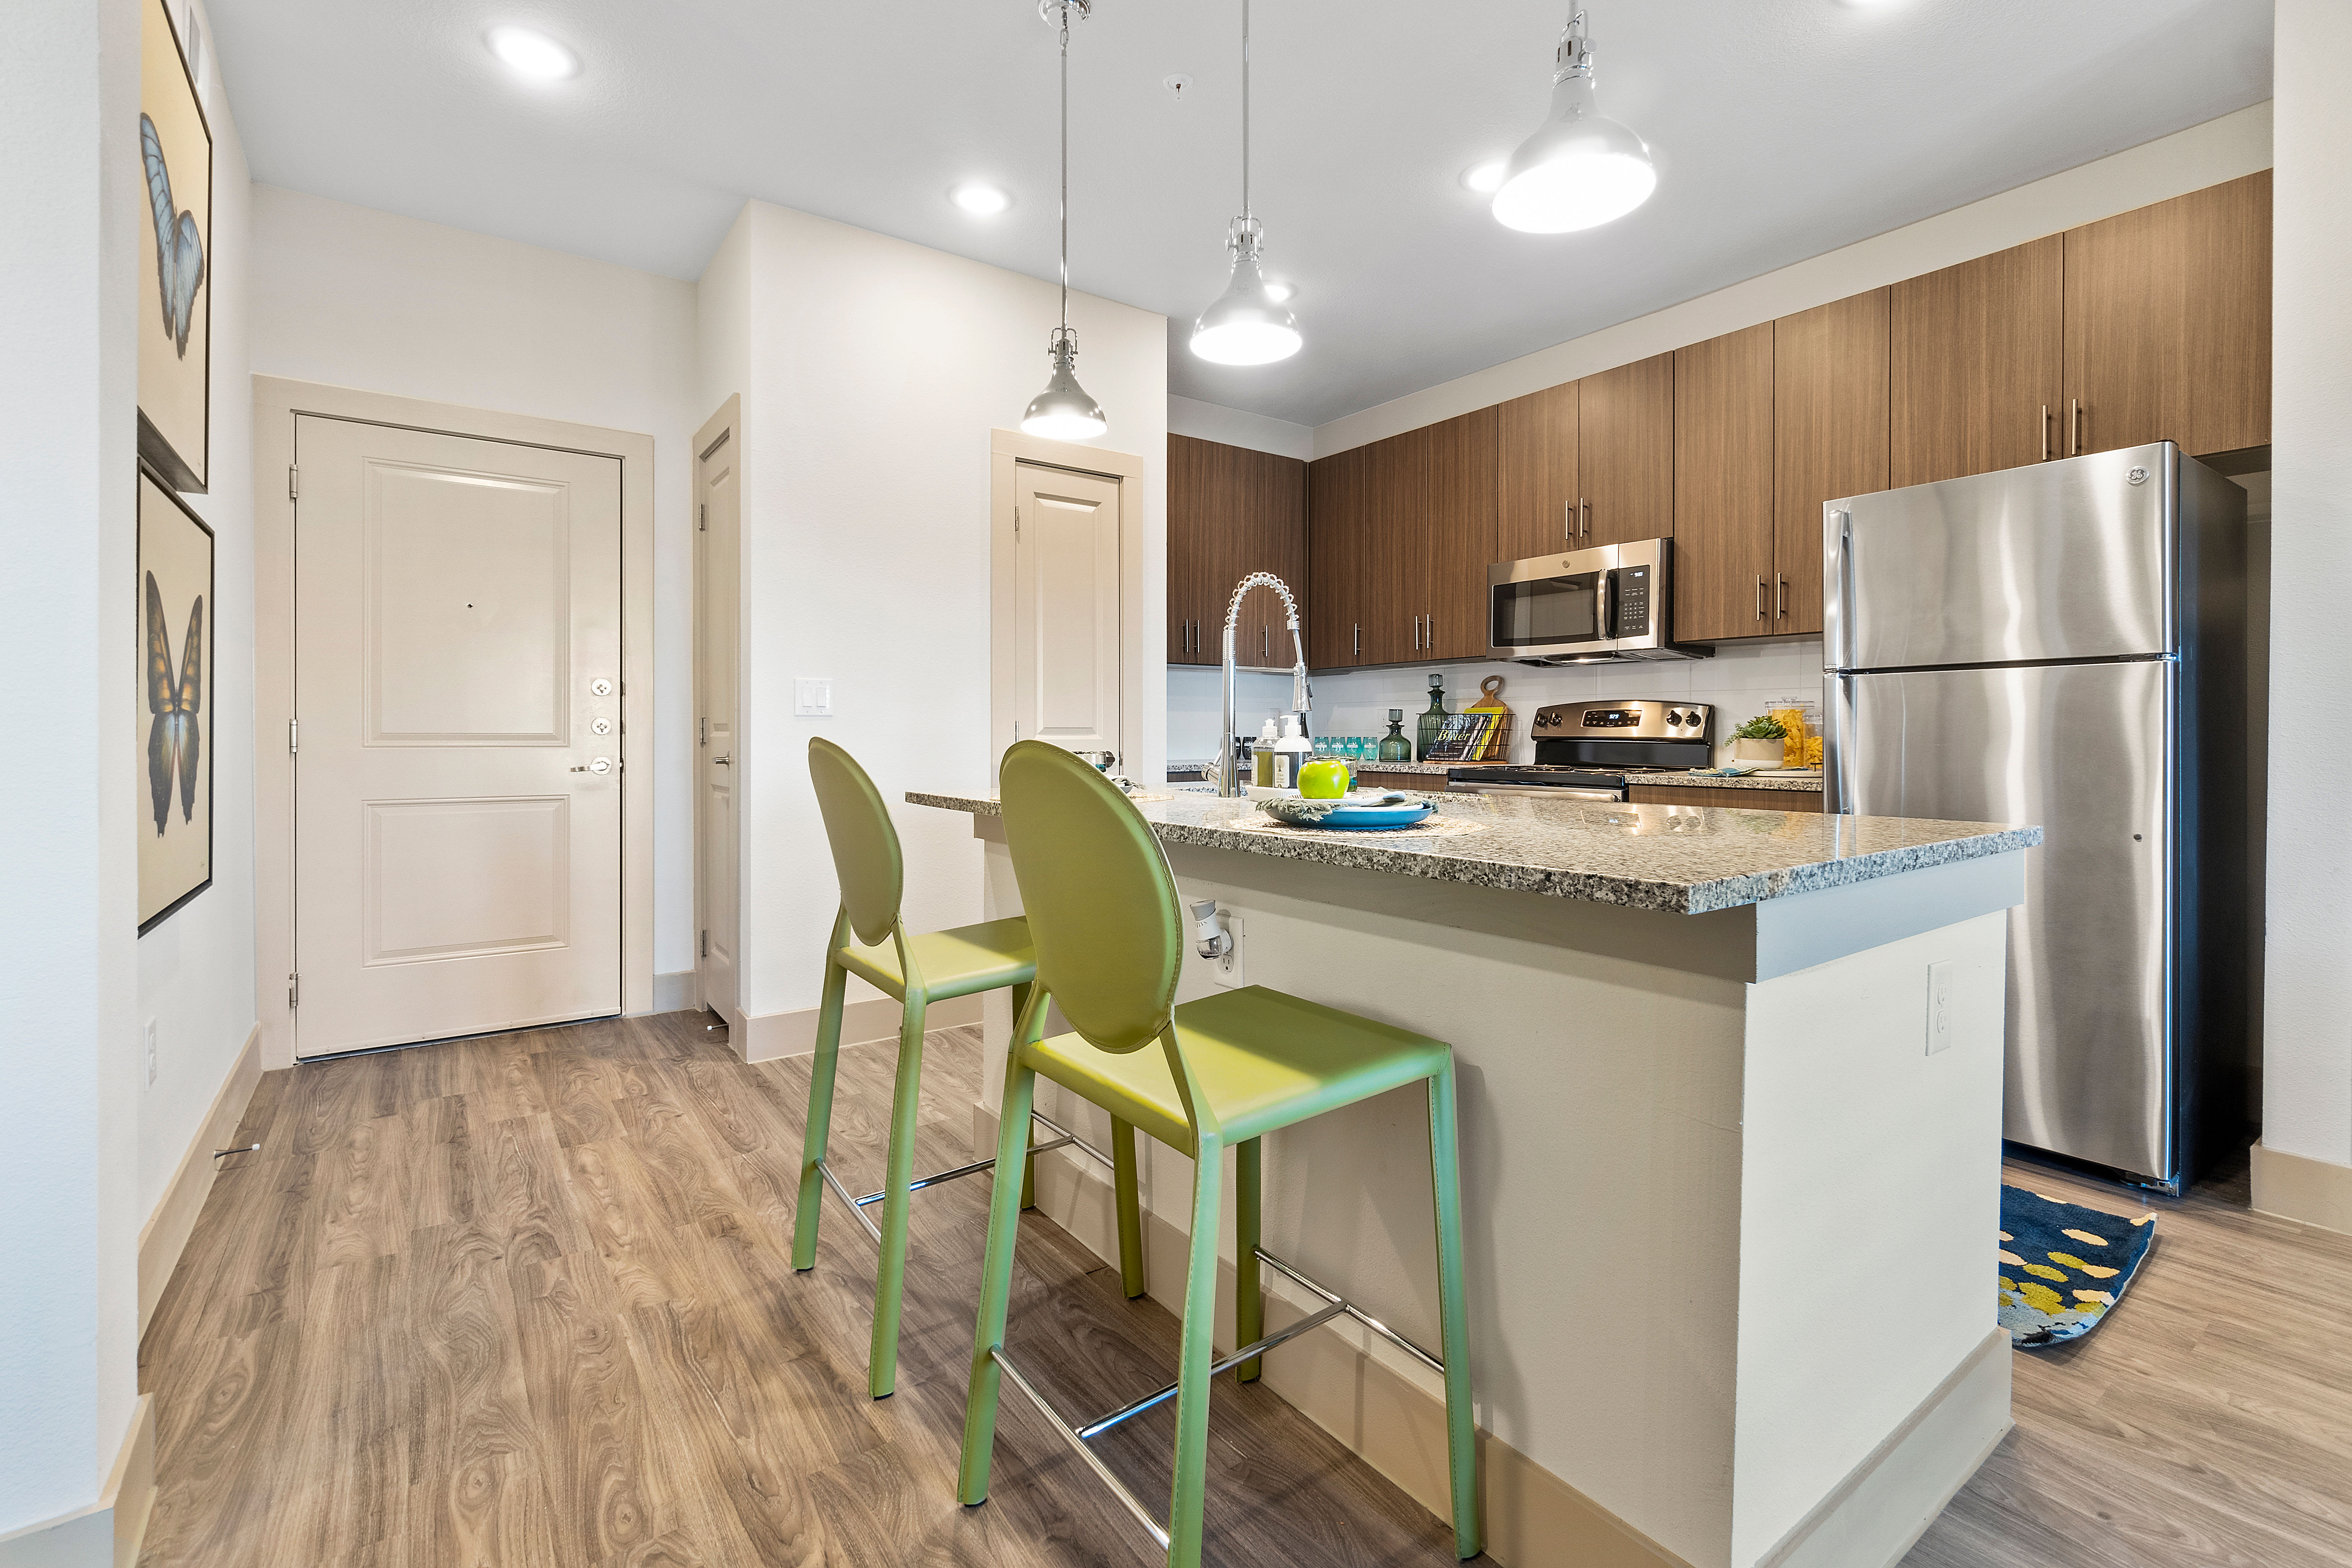 Kitchen with stainless-steel appliances at McCarty Commons in San Marcos, Texas